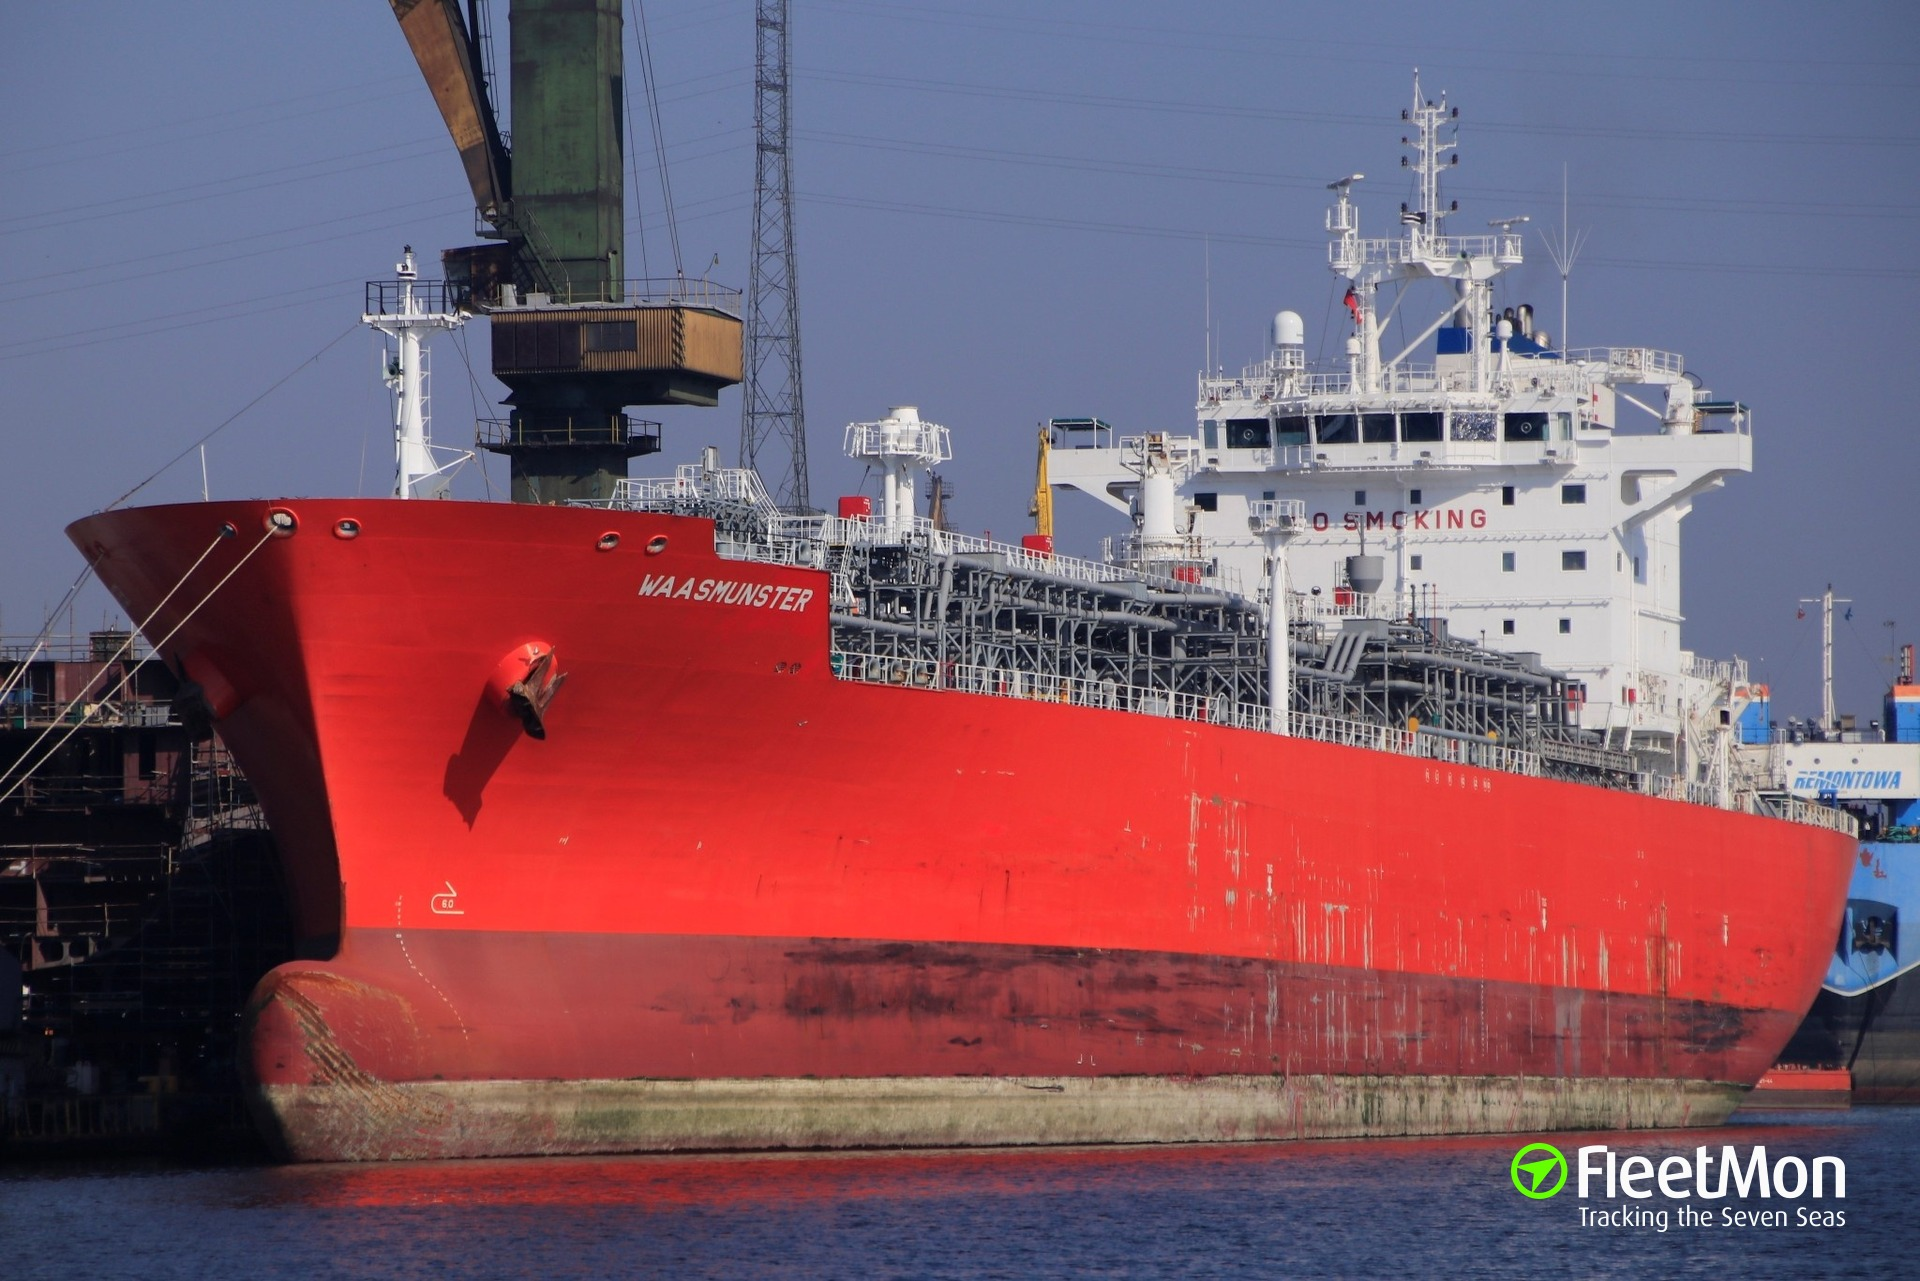 LPG tanker WAASMUNSTER breached in collision with fv GROS